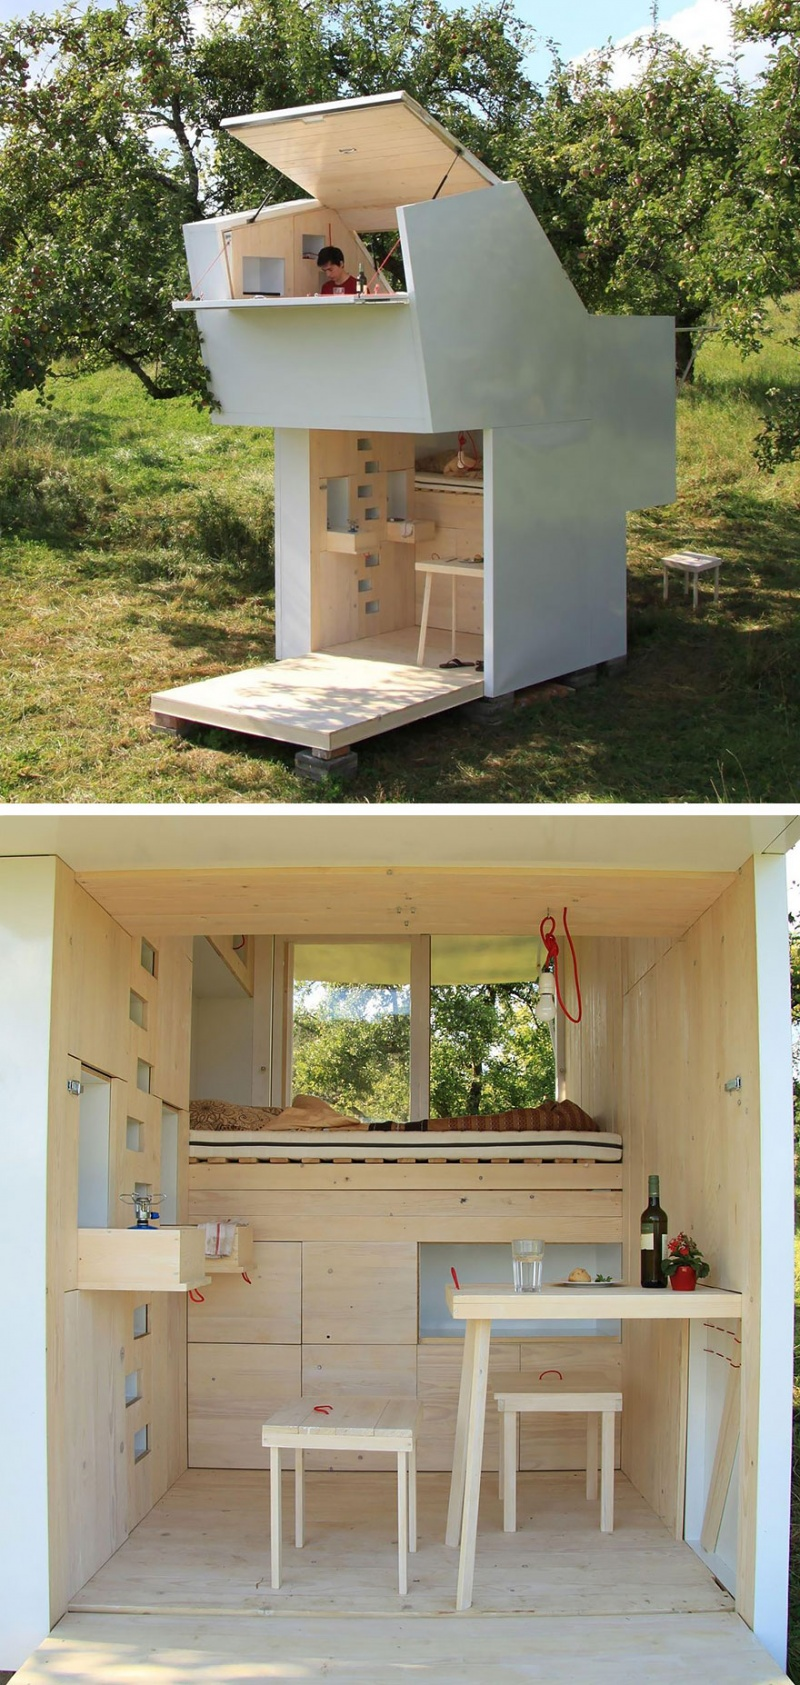 A Small Wooden Shelter-15 Tiniest Houses Which Are Small From The Outside But Big On The Inside